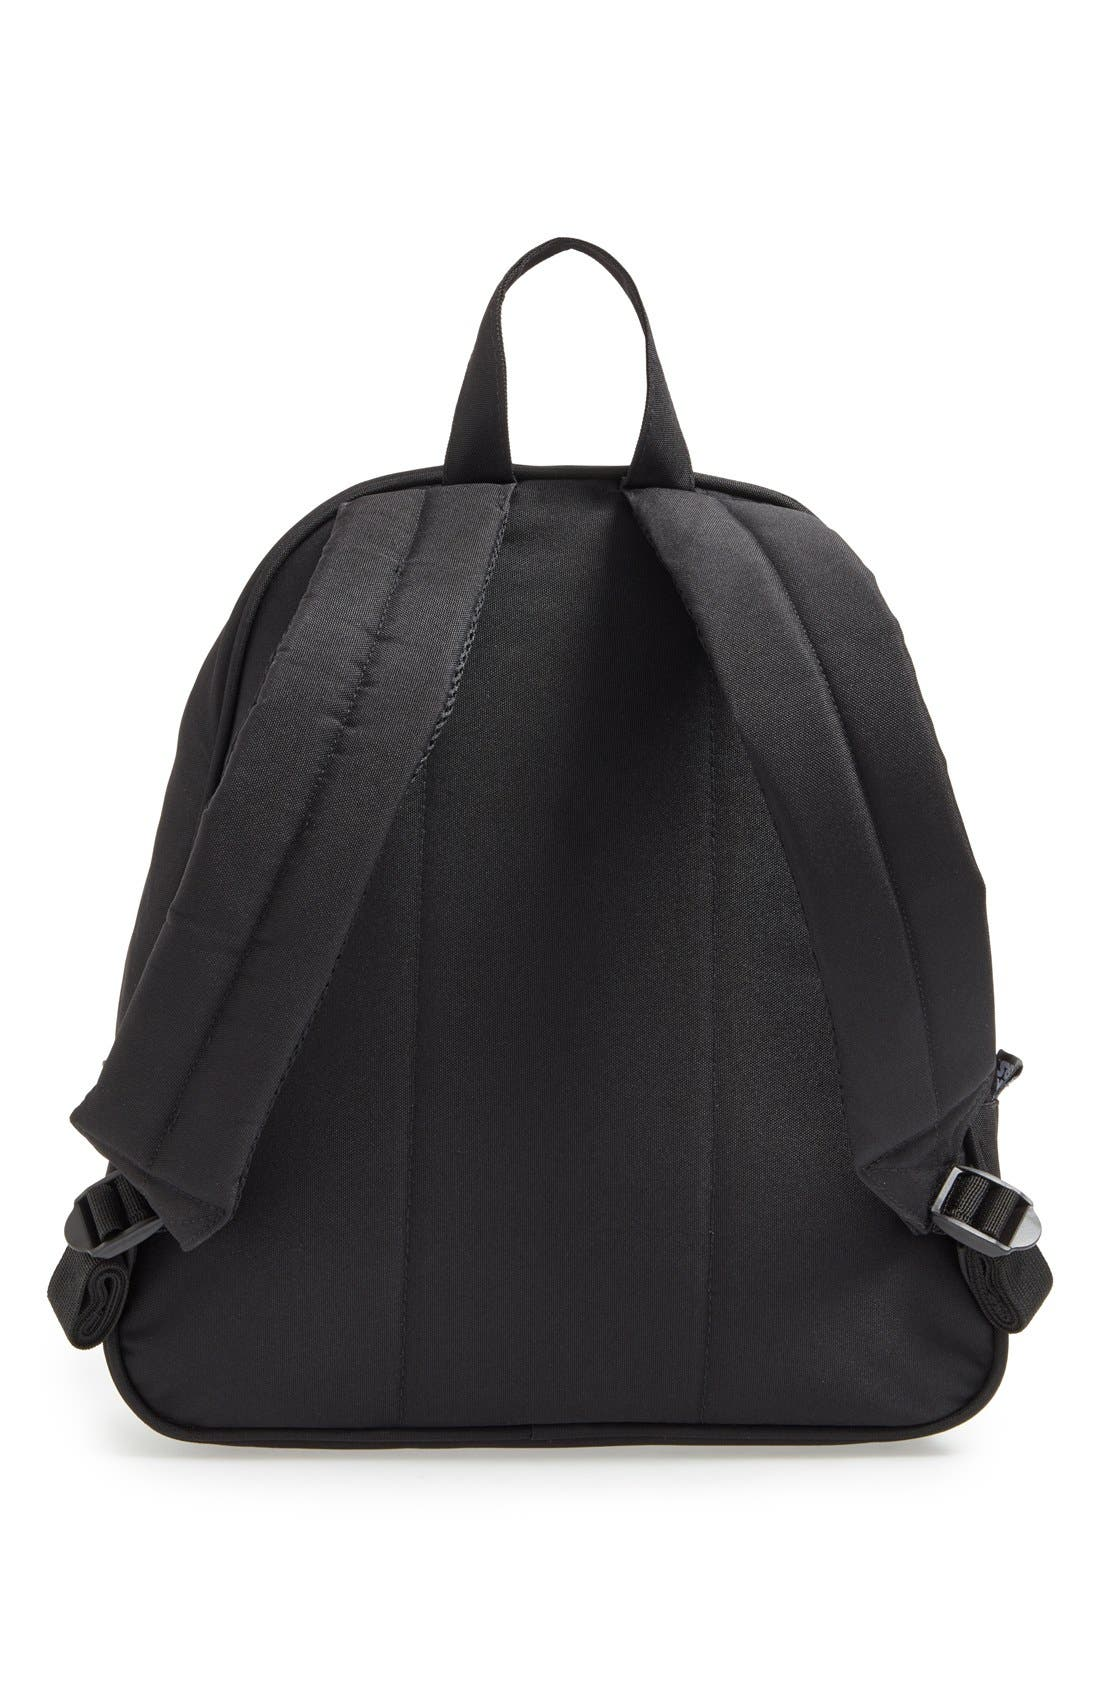 'Star Wars<sup>™</sup> - Darth Vader' Backpack,                             Alternate thumbnail 2, color,